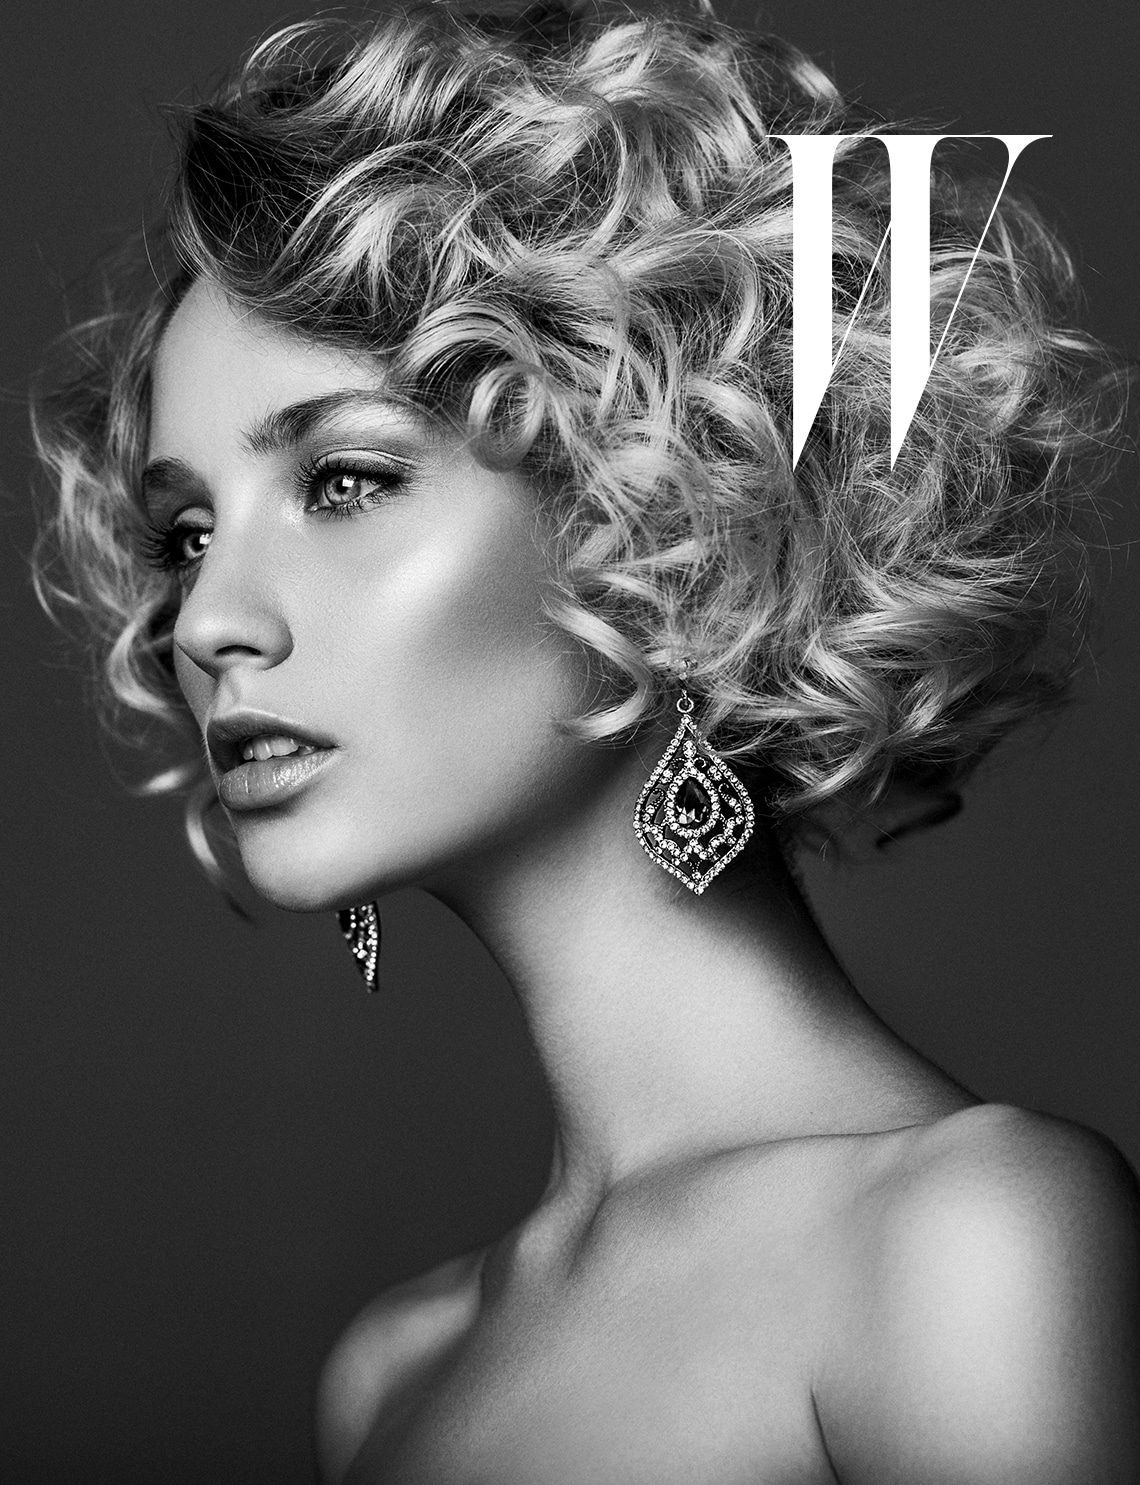 Advertise locally in W magazine in more than 100 markets across the U.S.